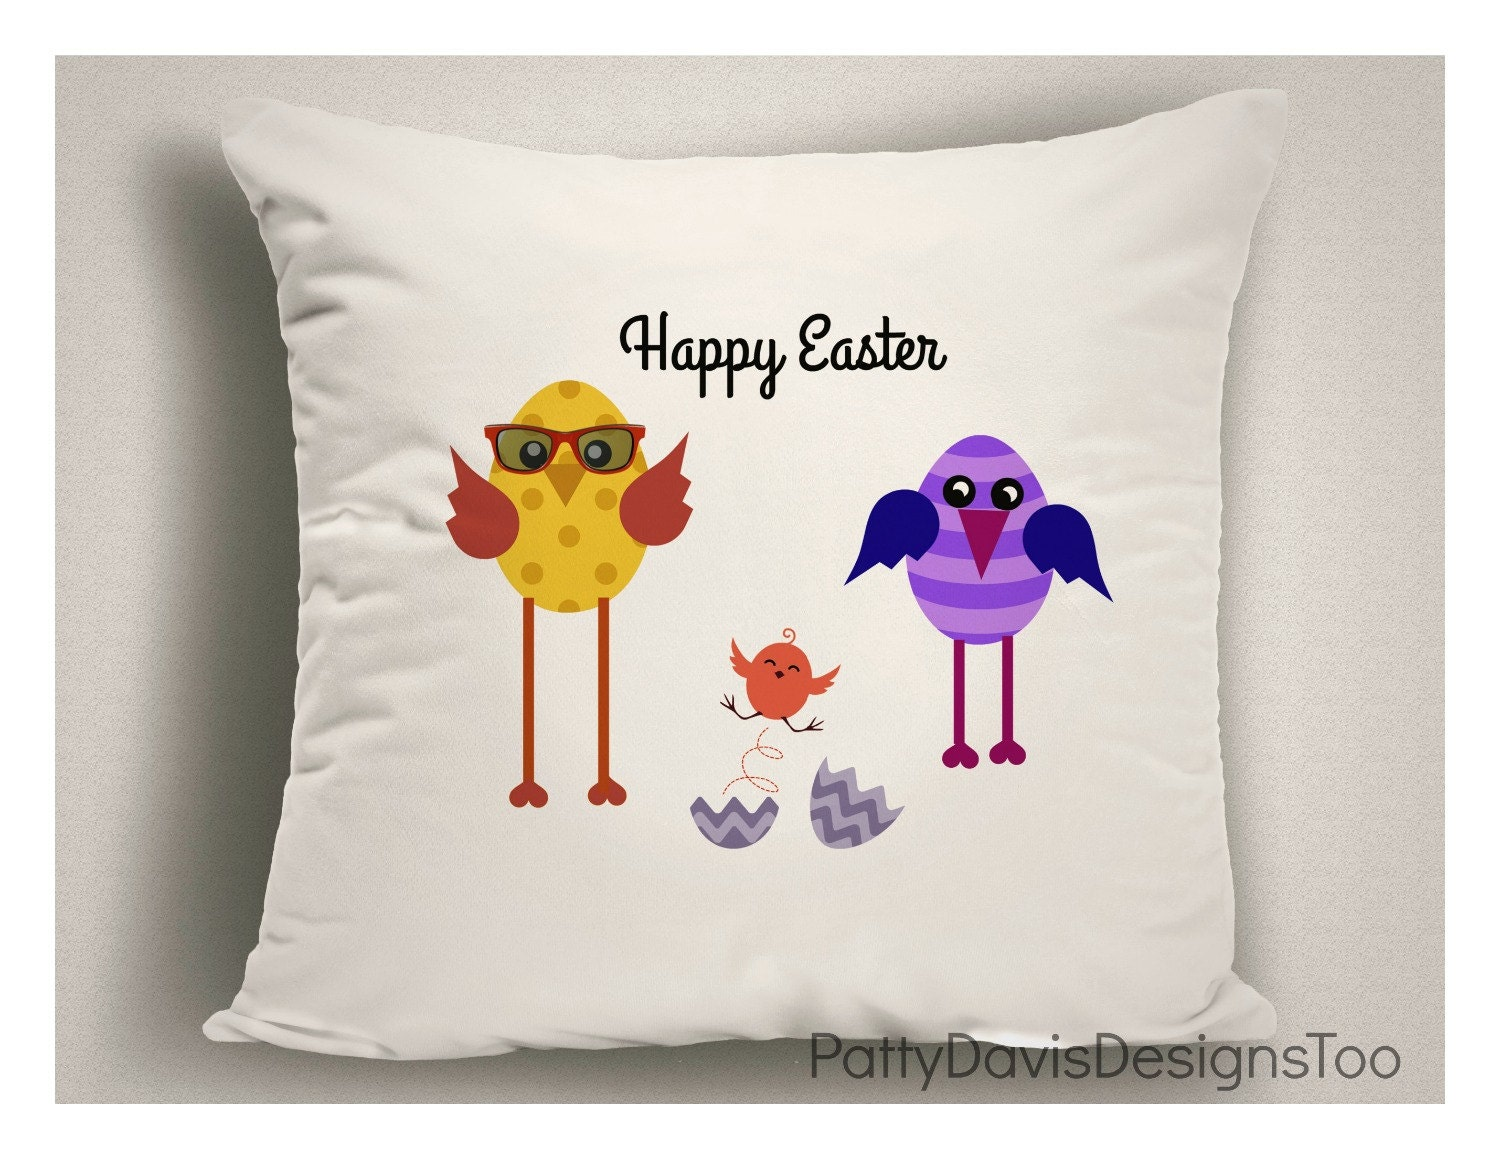 Easter Throw Pillow Covers : Easter Throw Pillows For Kids, Whimsical Happy Easter Pillow Covers, Easter Decorations ...